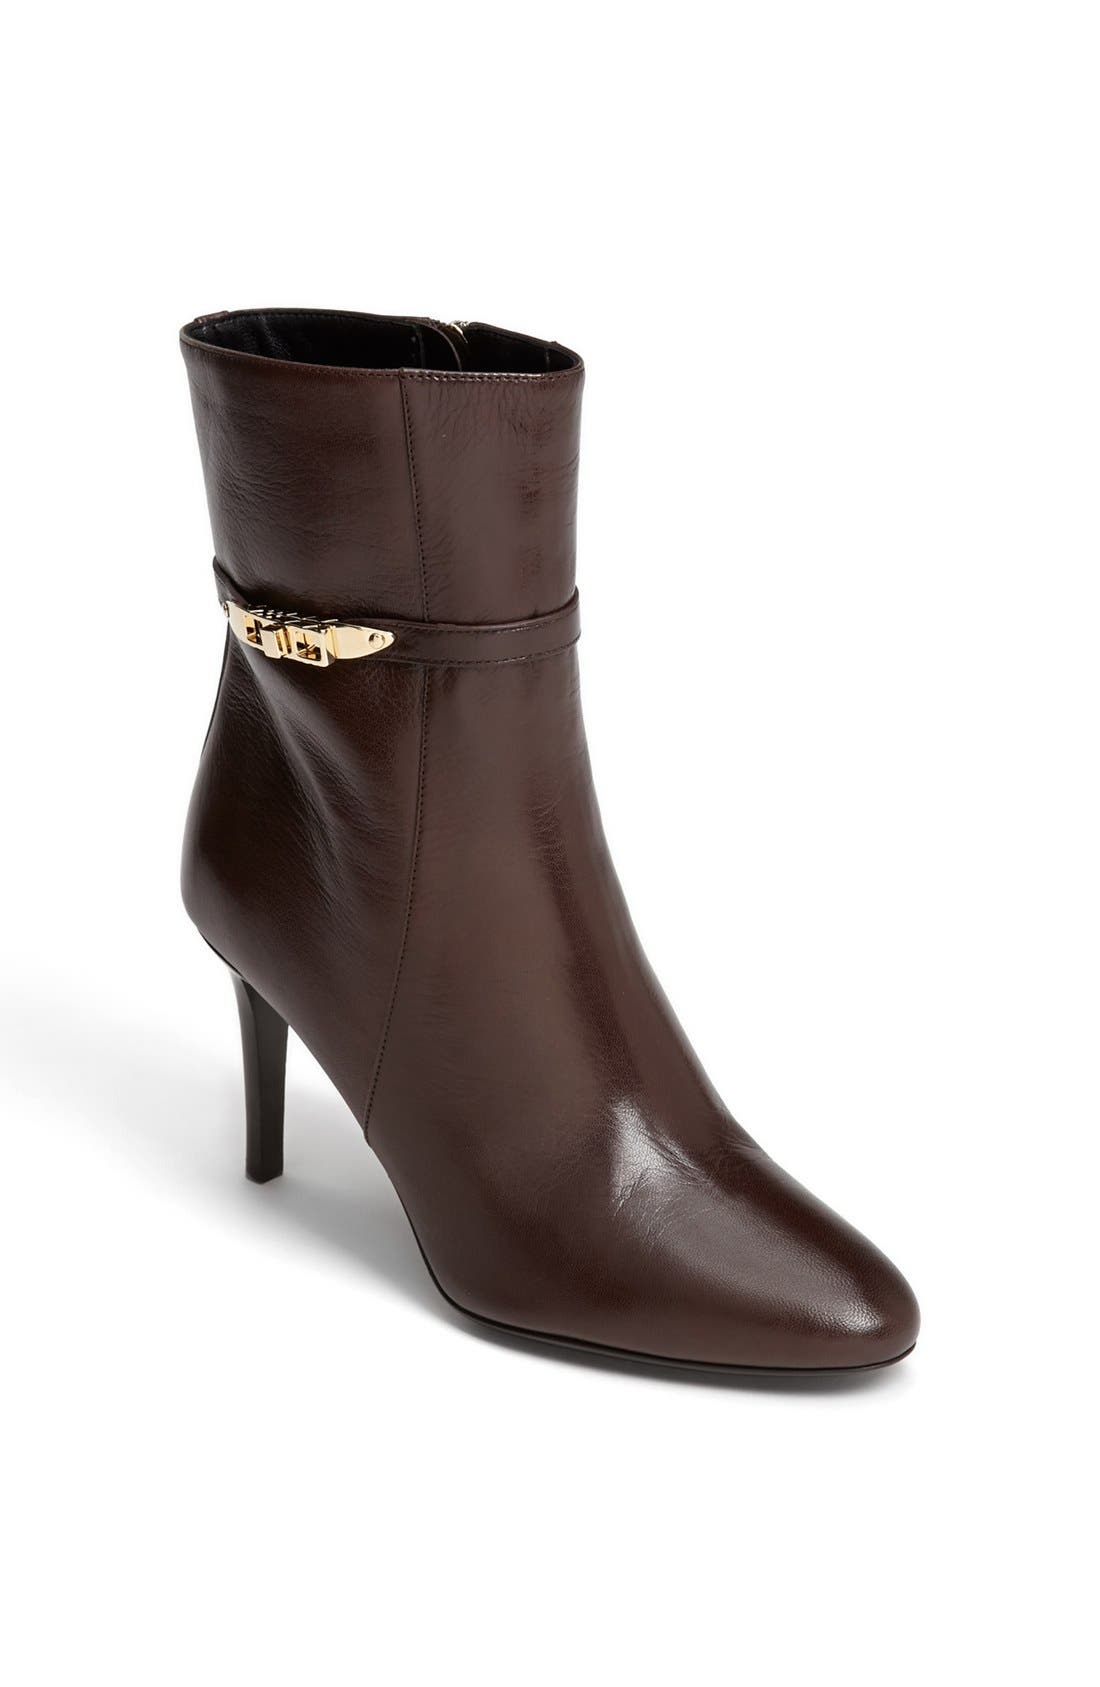 Alternate Image 1 Selected - Burberry 'Hainult' Leather Bootie